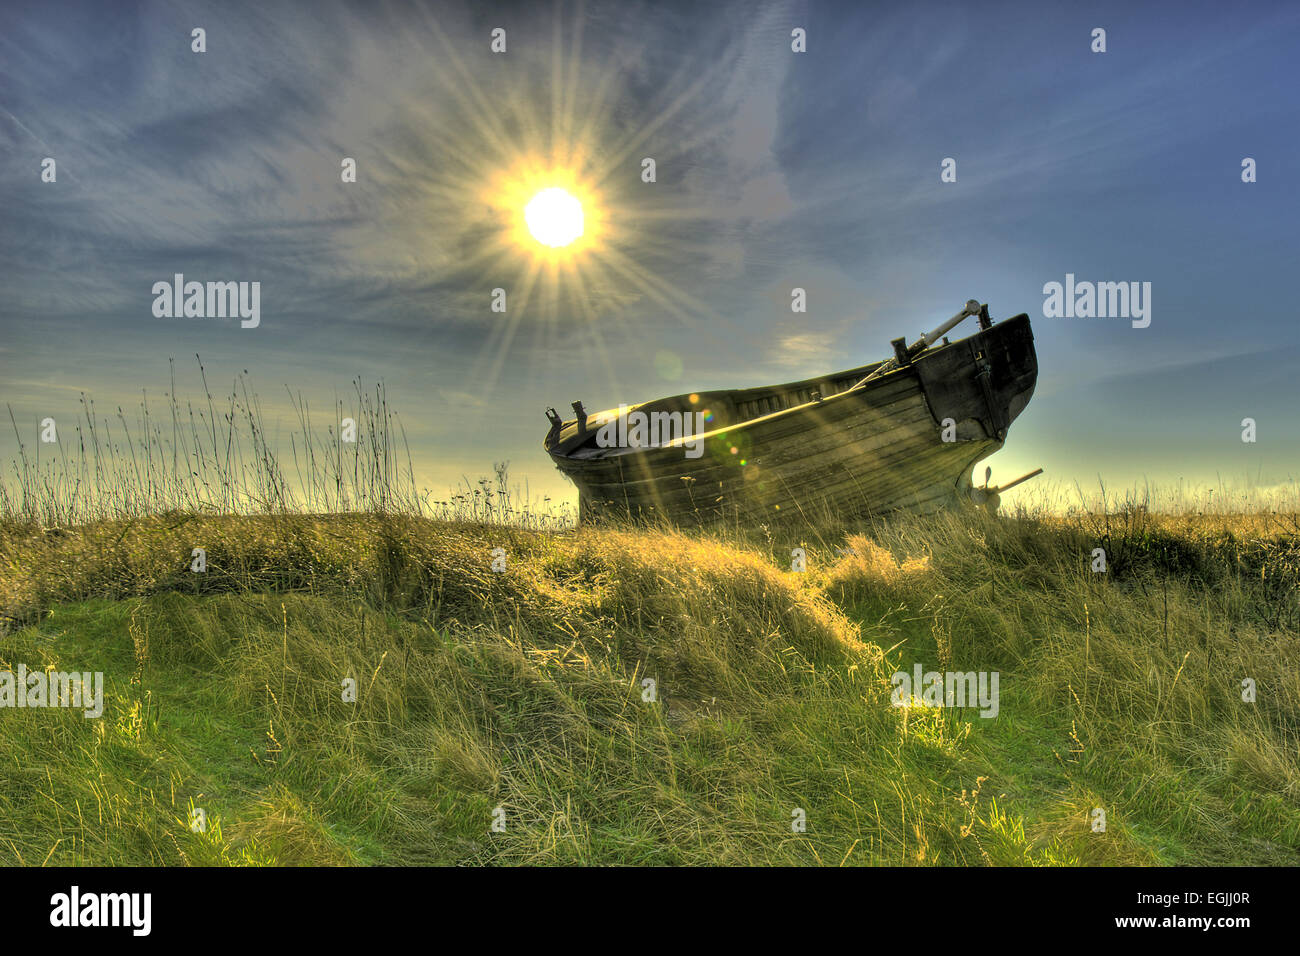 hdr-image-of-an-abandoned-boat-dungeness